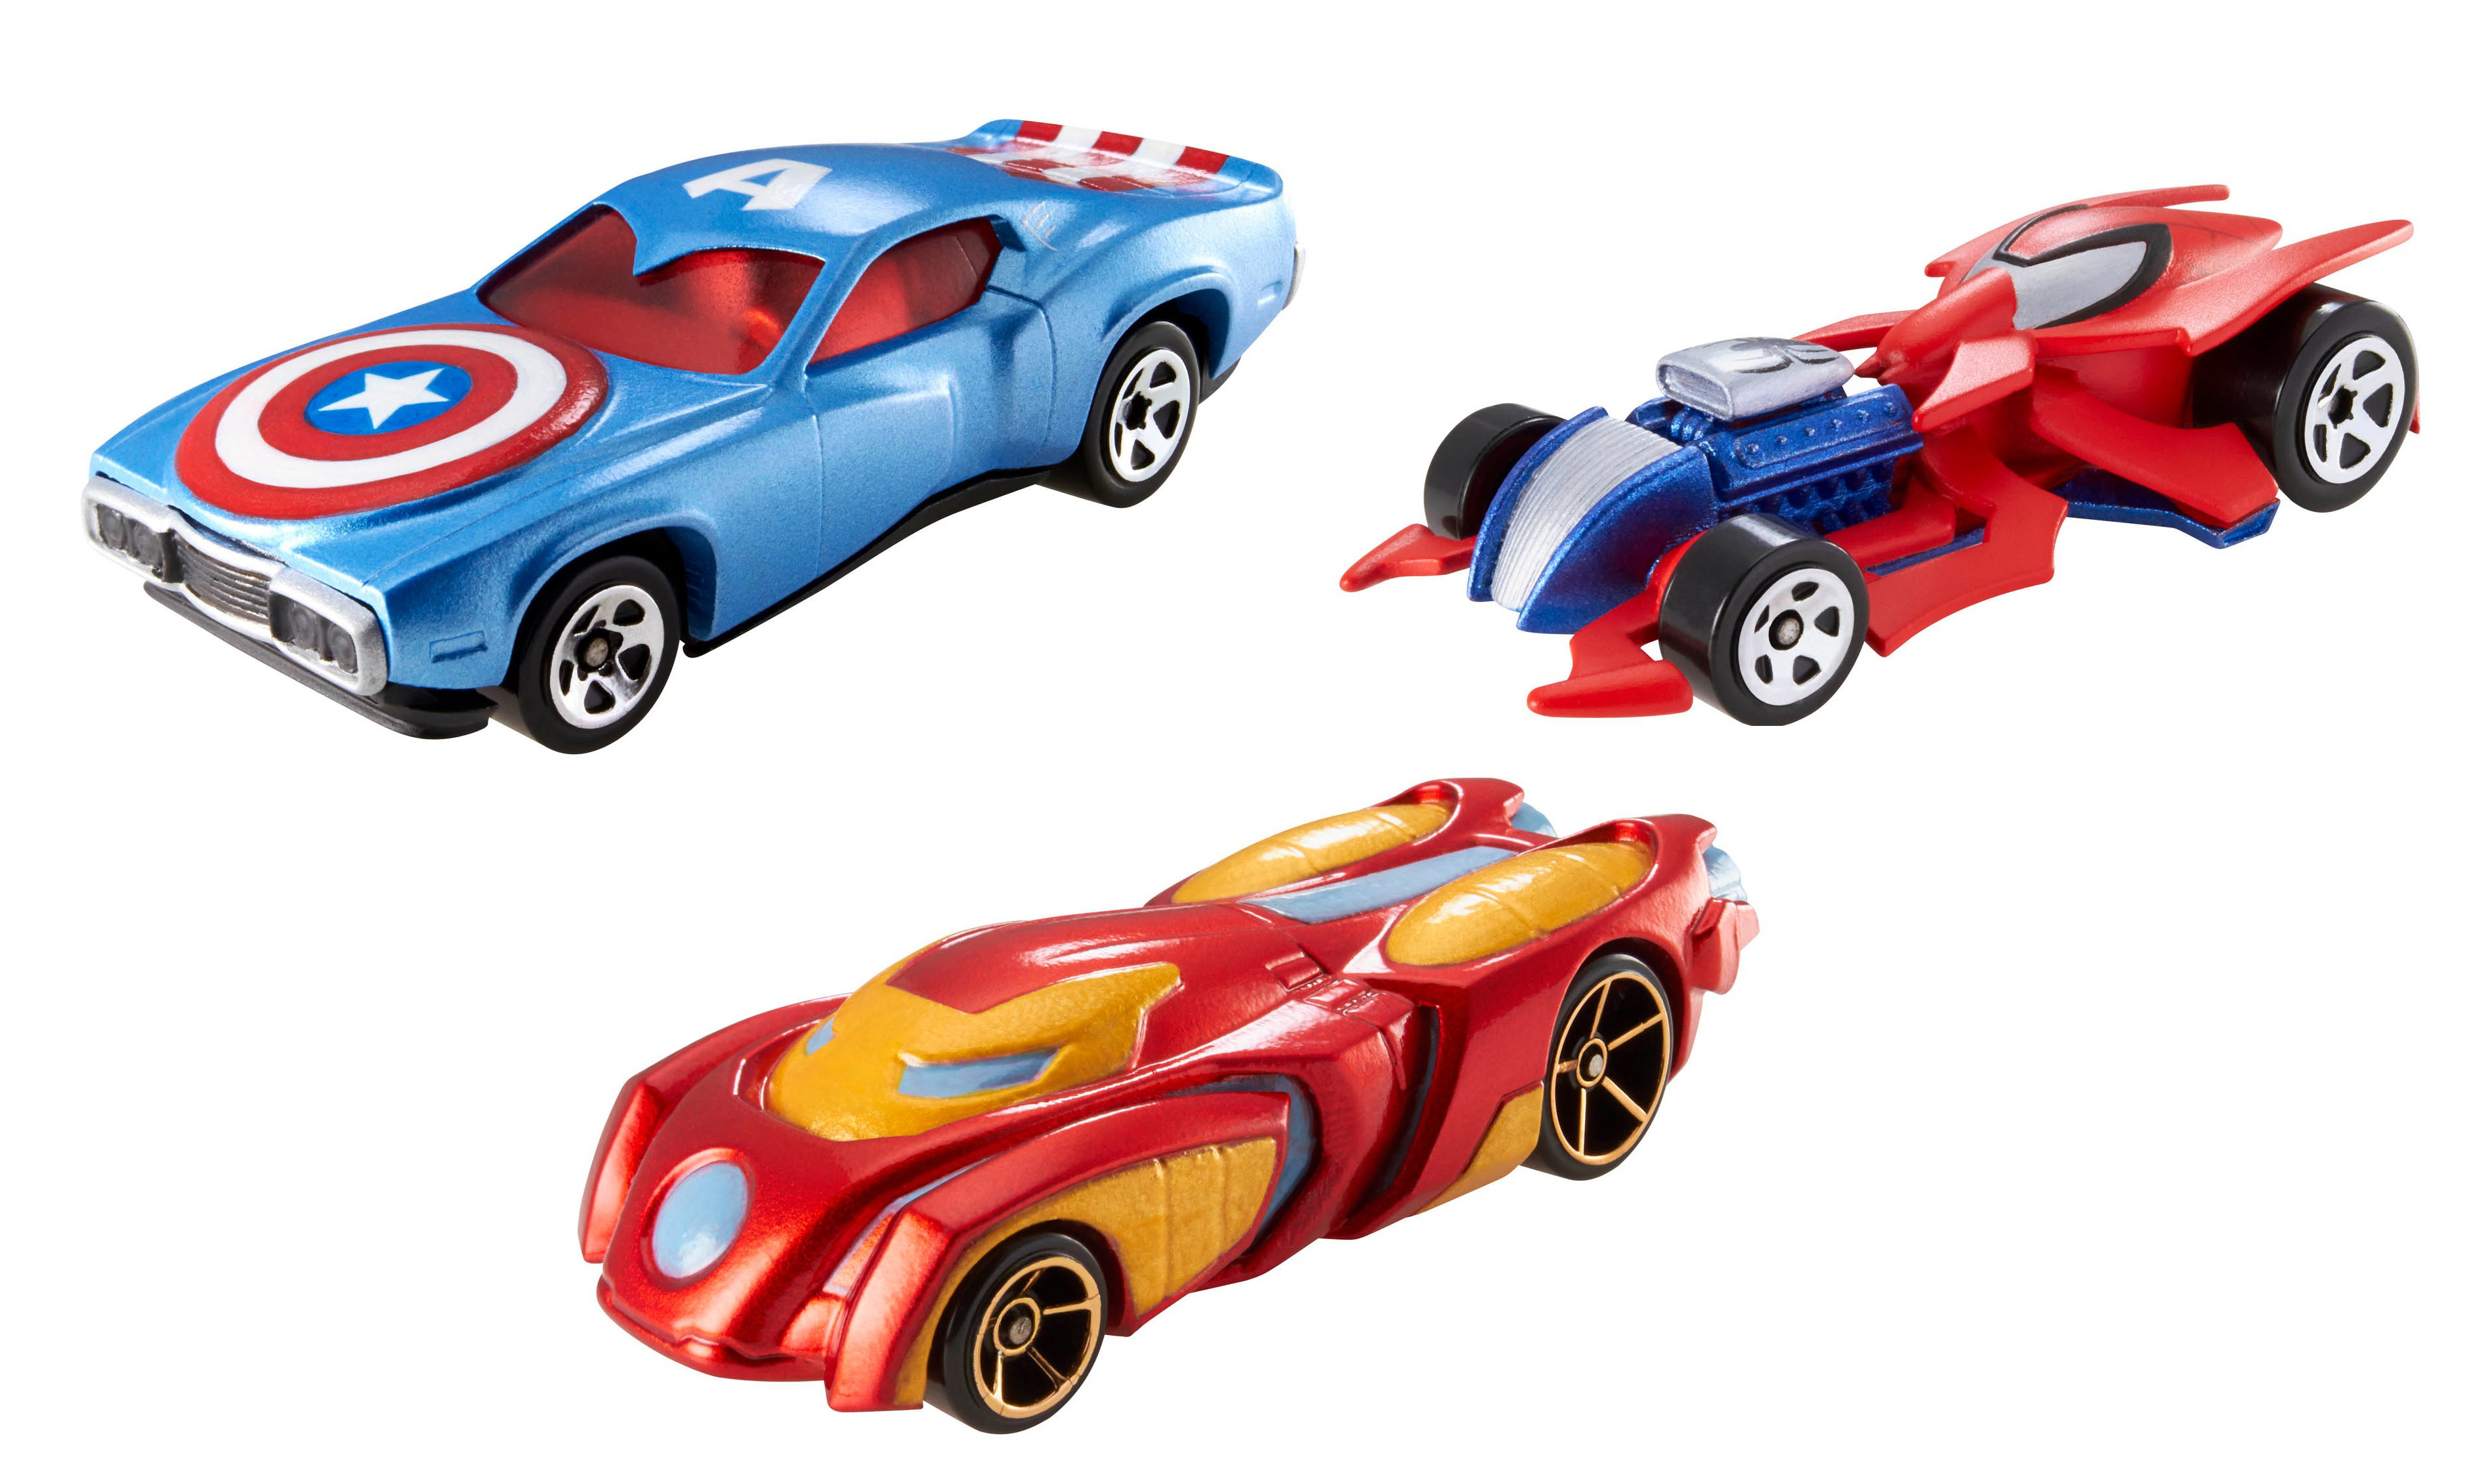 3797x2261 Clip Art Cartoon Hot Wheel Cars Clipart